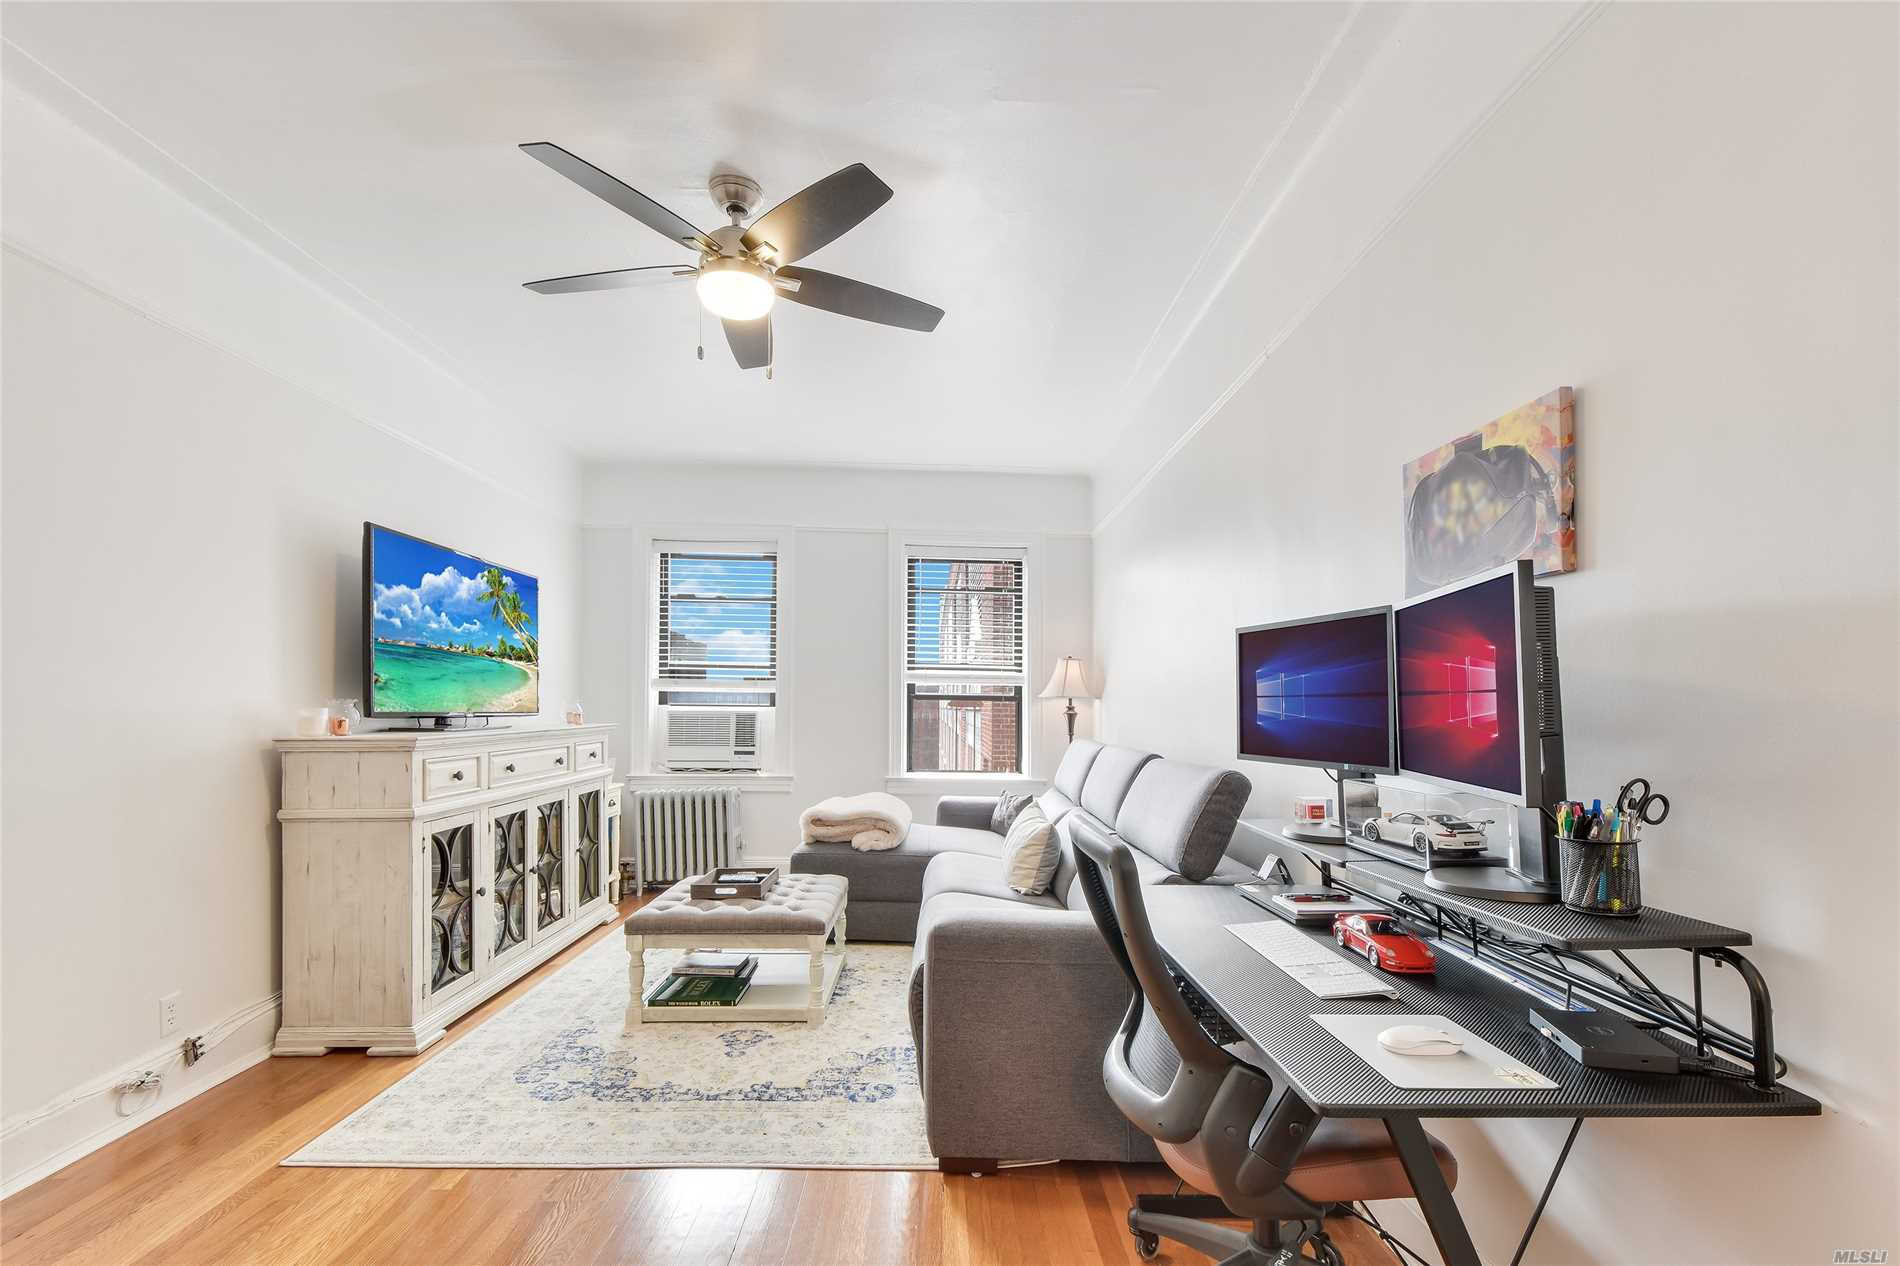 Available July 1, 2019. Sorry, no pets or guarantors. Applicants must earn 40x the monthly rent and have 700+ credit. Board interview and approval required! Fully-renovated gem in Jackson Heights on the prized 34th Avenue!